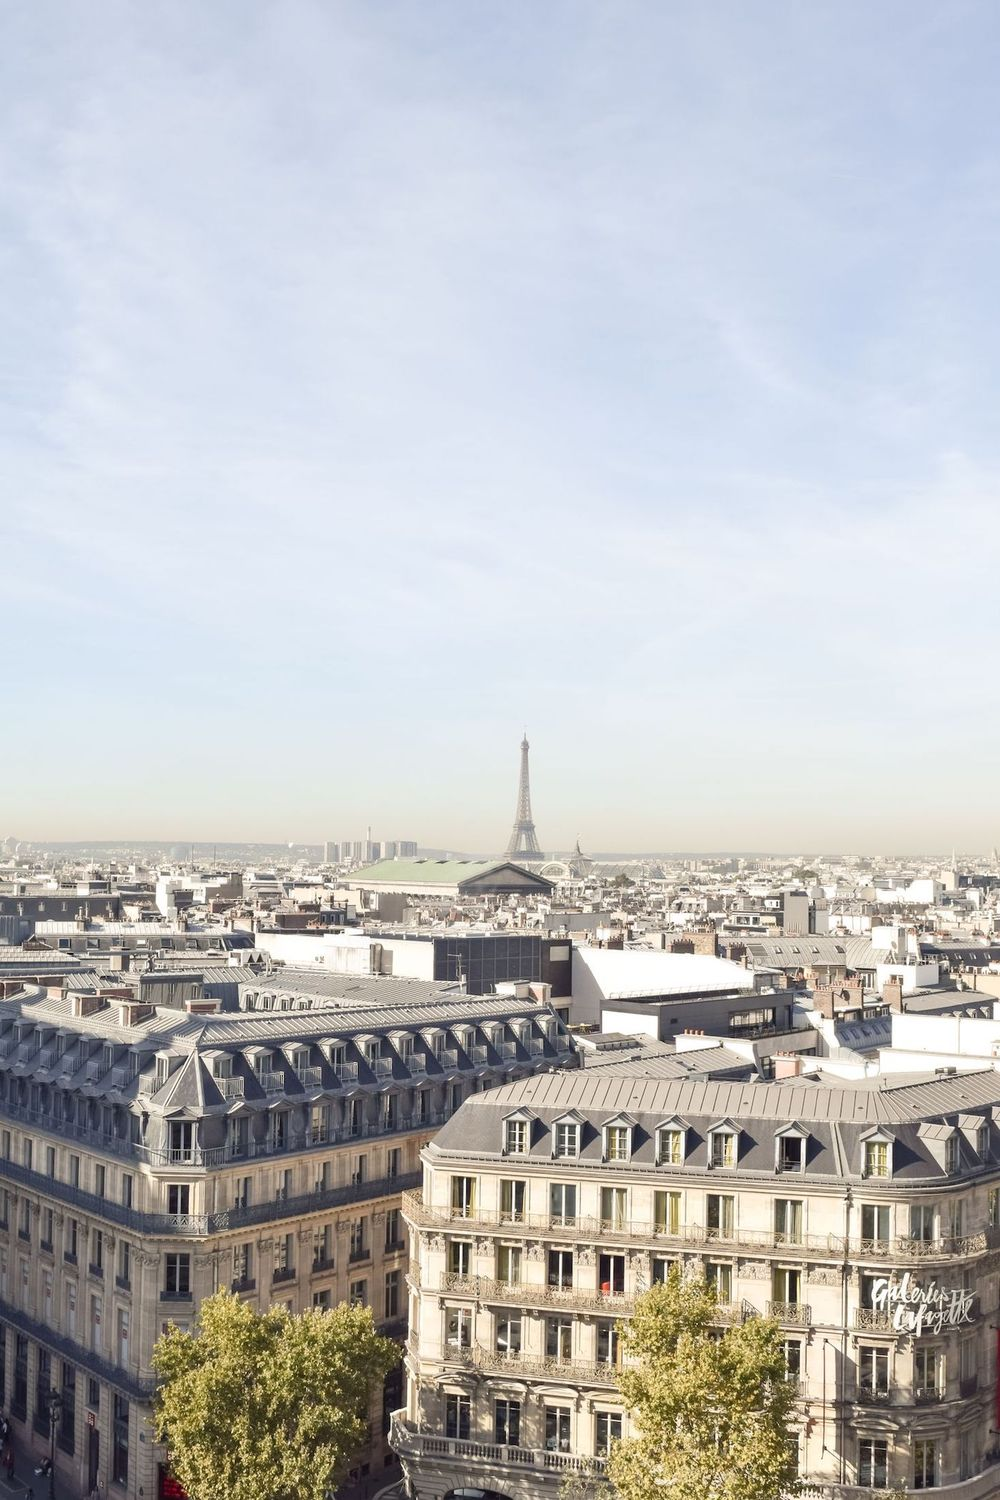 Galeries Lafayette Rooftop View of Eiffel Tower, Panoramic View of Paris Rooftops!